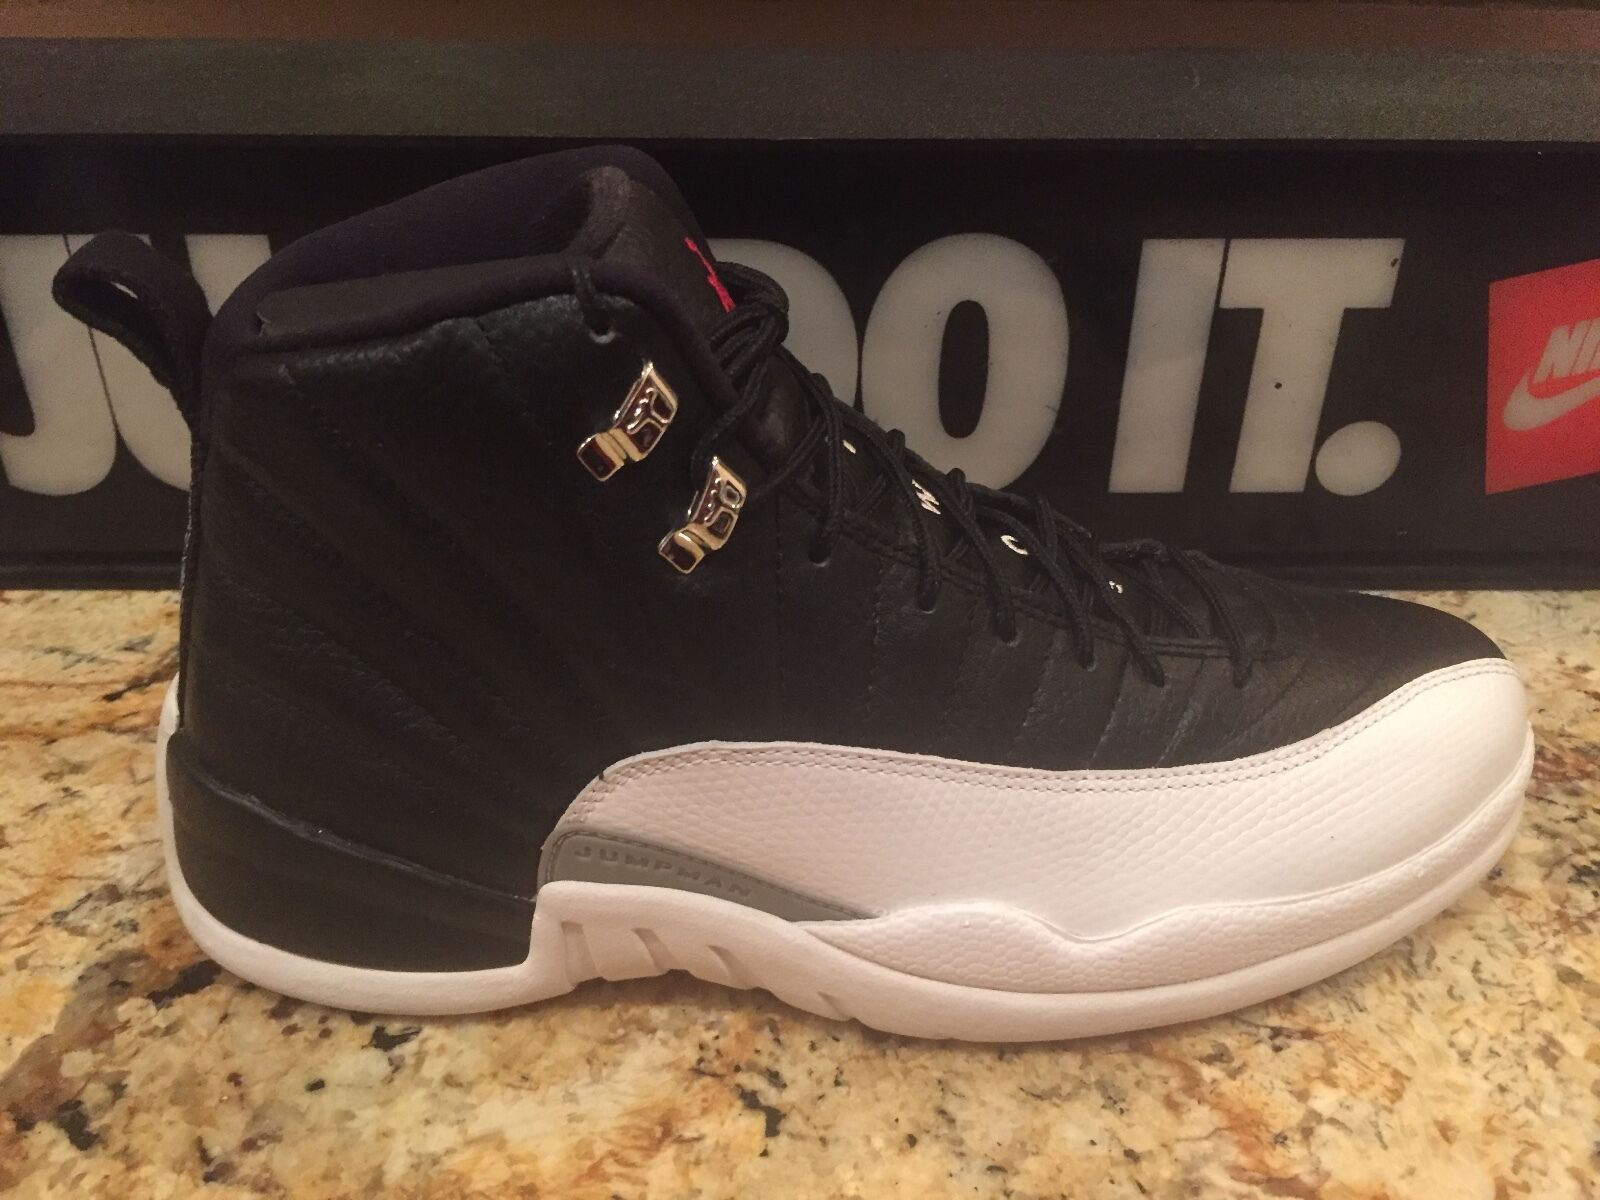 NIKE AIR JORDAN RETRO XII SIZE 11  PLAYOFF   130690 001 FLINT WINGS DS 12